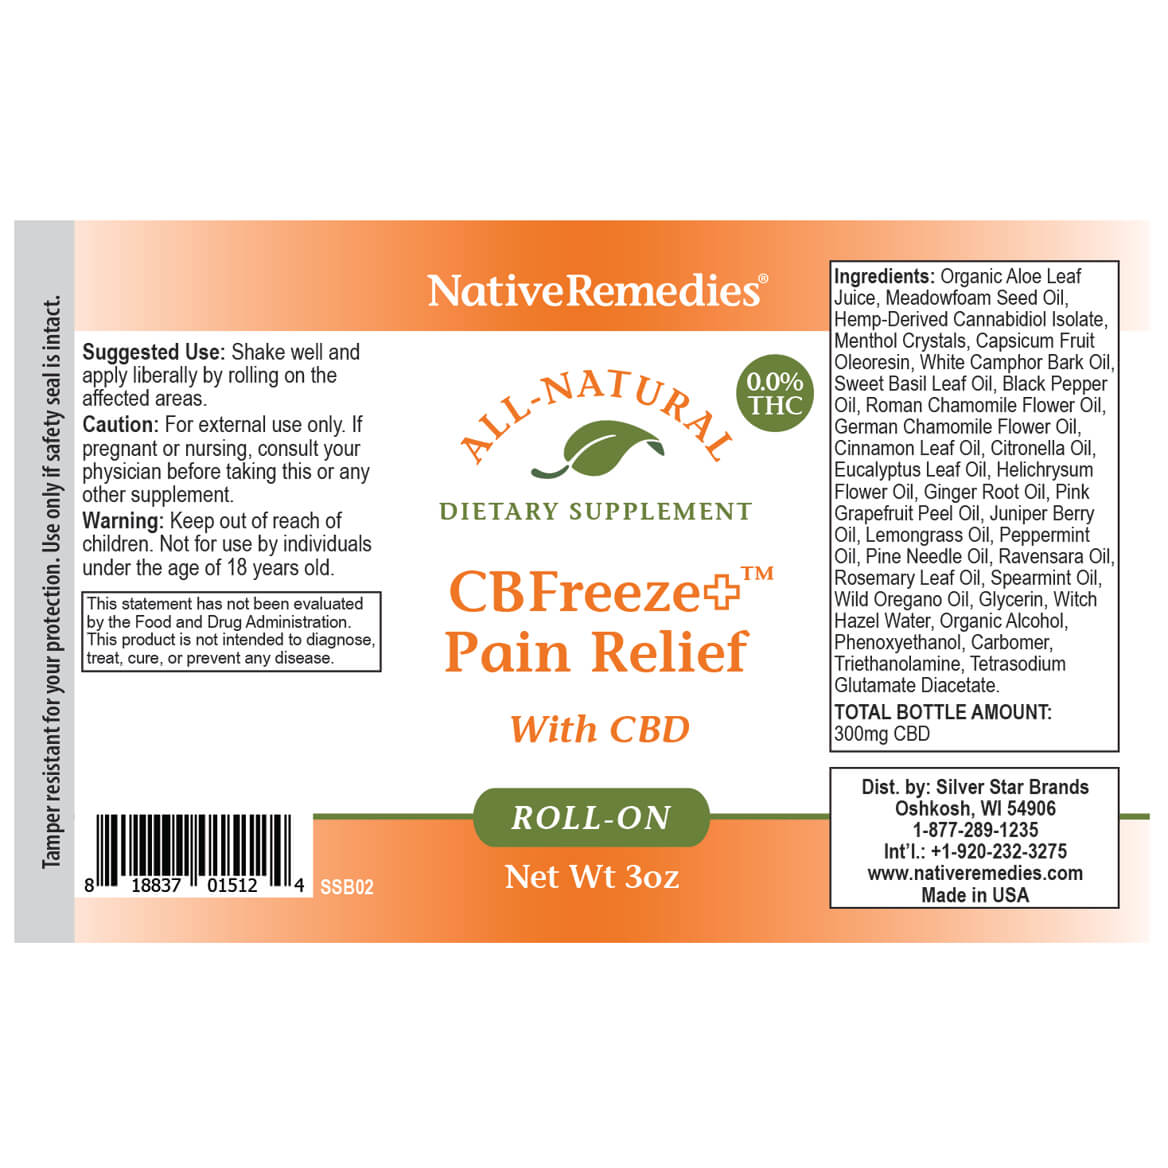 CBFreeze+ Pain Relief Roll-on - NativeRemedies®-369289